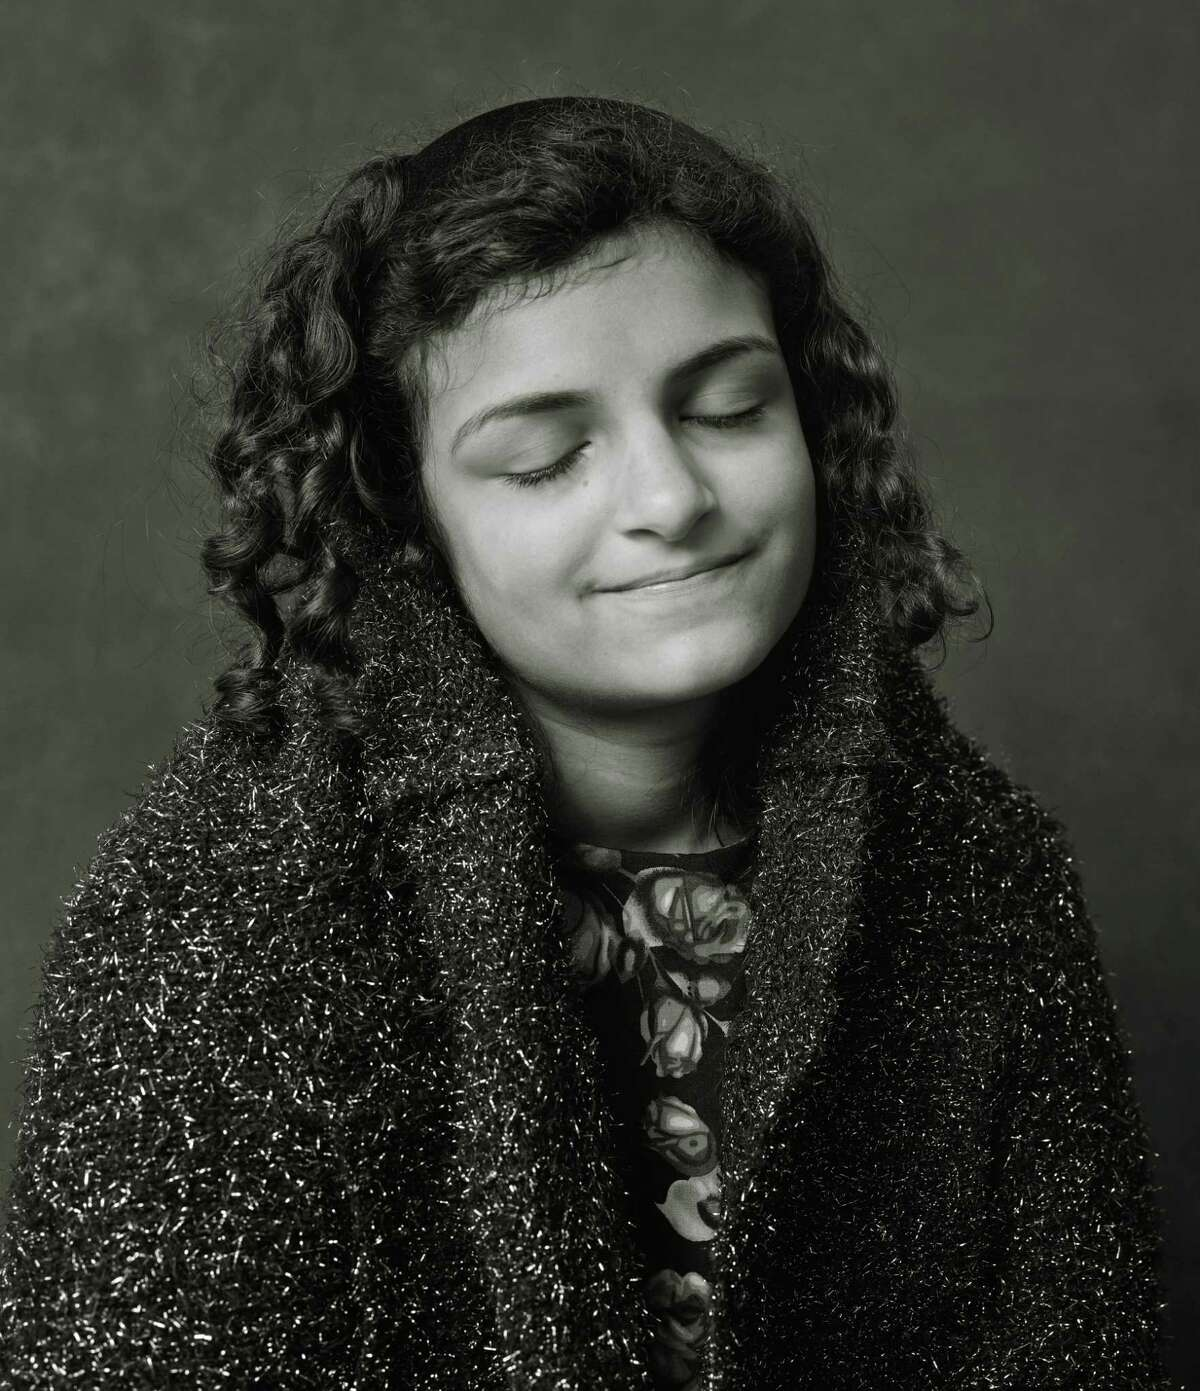 """Photo exhibit: Photographer Michael Nye has spent the last seven years interviewing blind people all over the country about their lives and taking portraits of them. The end result is the thought-provoking exhibit """"My Heart is Not Blind: On Blindness and Perception."""" Nye has paired his powerful images with audio from the interviews. Among the people spotlighted is Paloma Rambana, pictured, an 11-year-old activist who led a successful campaign to close a funding gap in Florida that meant there was no money in public education to aid visually impaired and blind students between the ages of 6 and 13. Opens Saturday. Through March 31. Witte Museum, 3801 Broadway. 210-357-1900; wittemuseum.org. - Deborah Martin"""